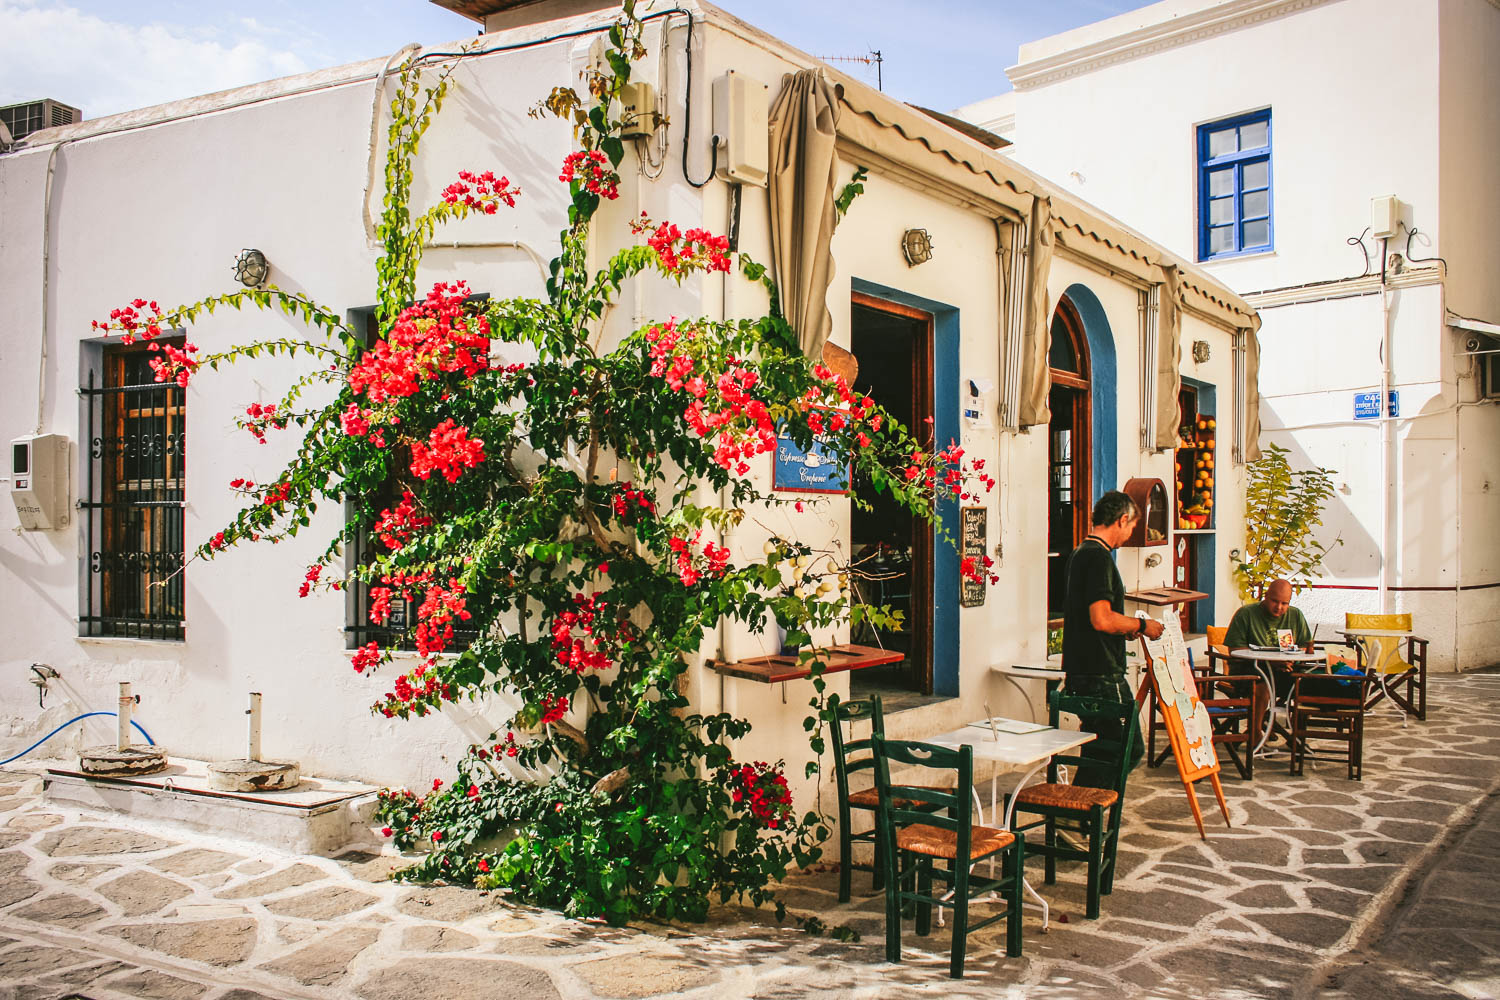 CAFE ON PAROS ISLAND. BY LEONIE WISE